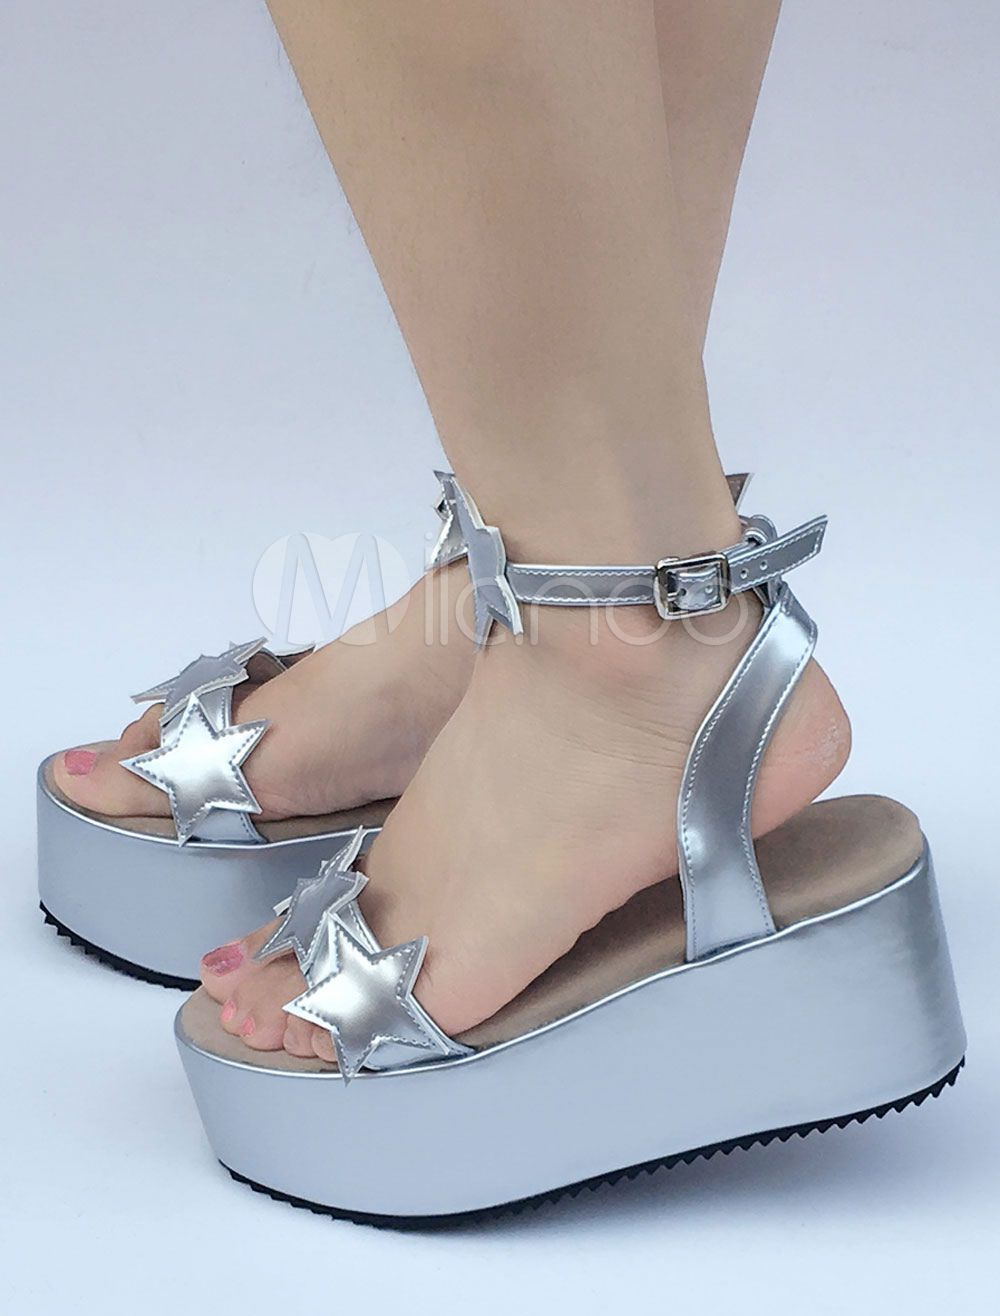 6b8eec02e0c2 Sweet Lolita Shoes Silver Stars Platform Wedge Lolita Sandals  Shoes ...